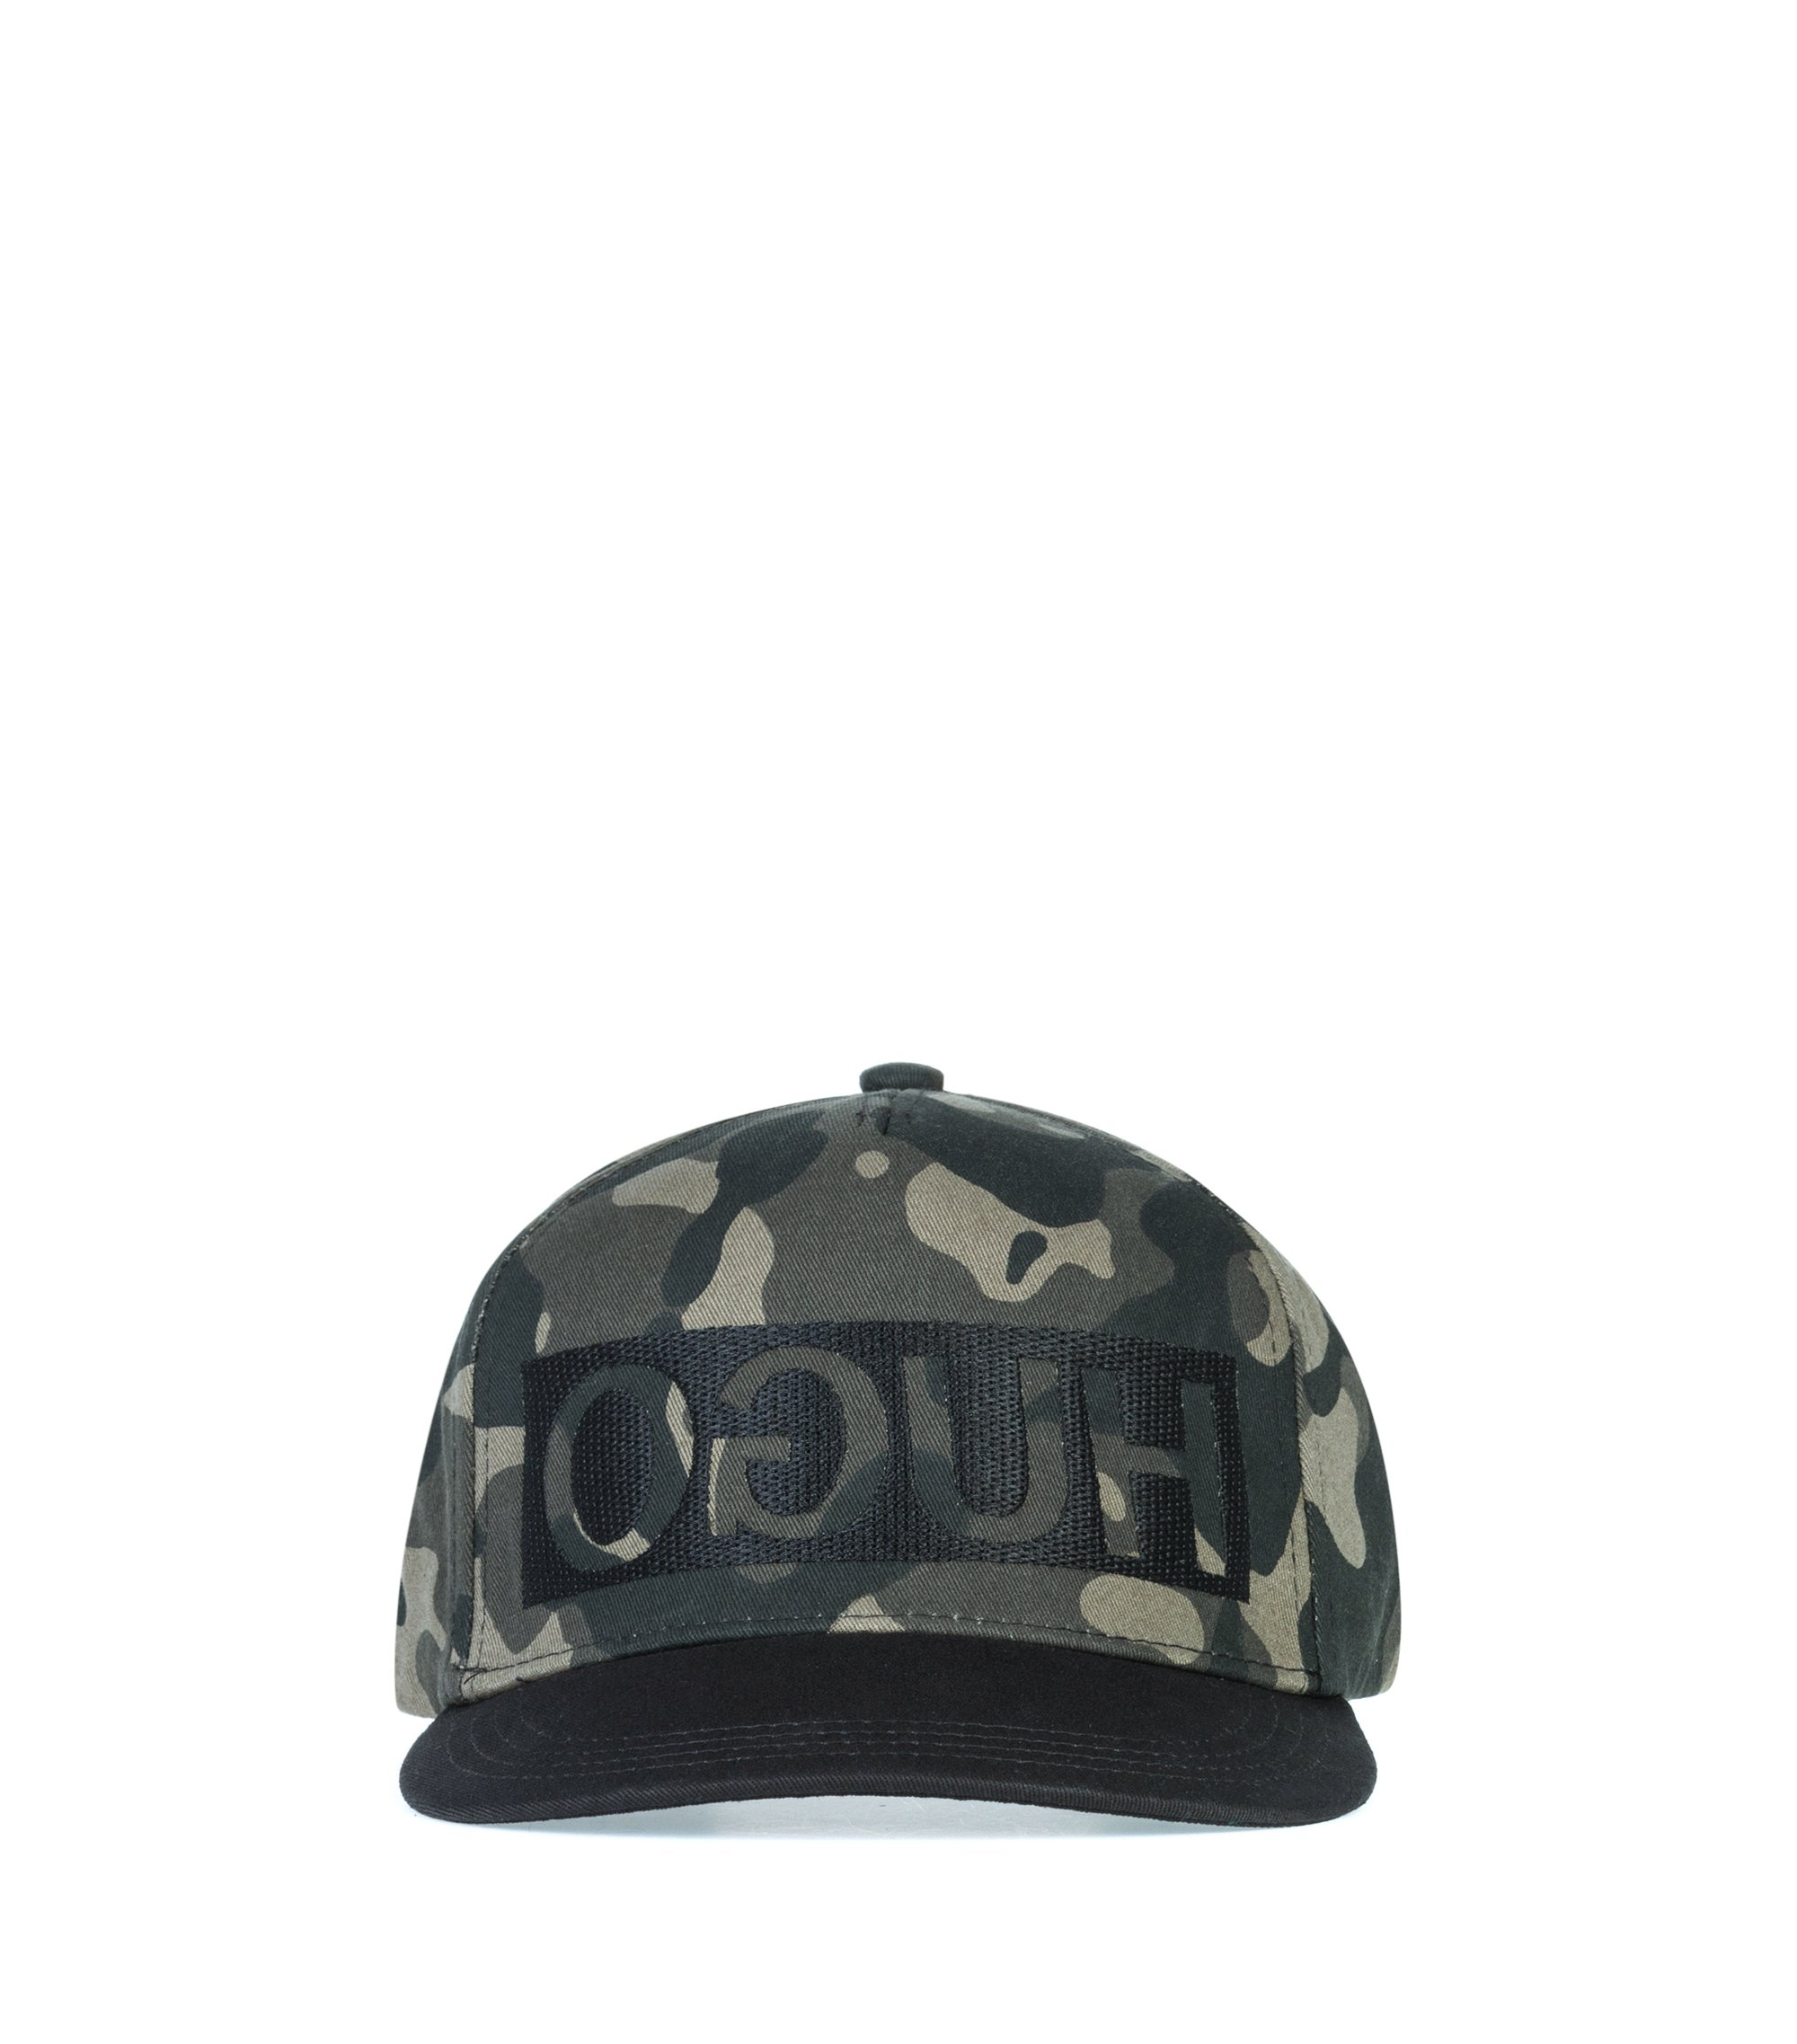 Reverse-logo snapback cap in camouflage cotton gabardine, Patterned